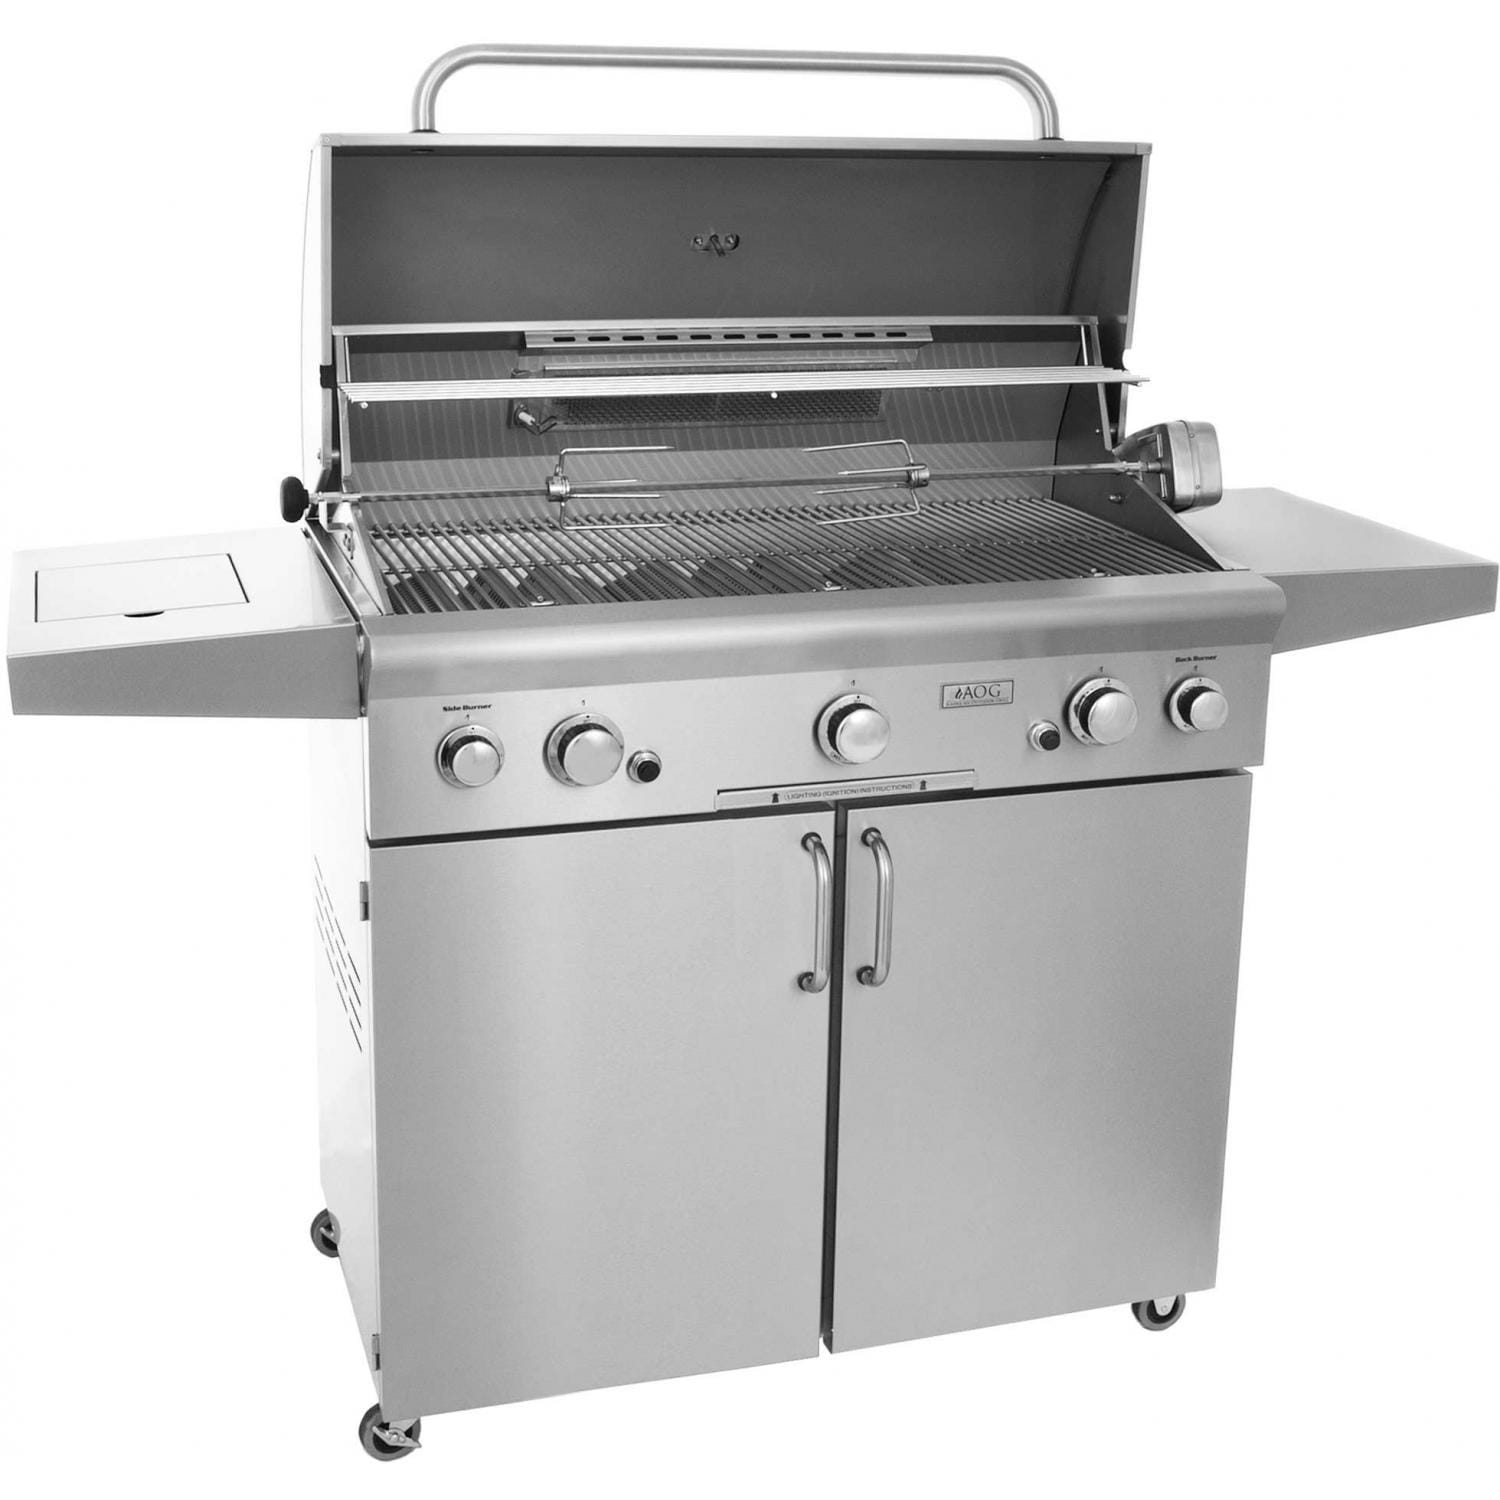 Outdoor Gas Barbecue Grills ~ American outdoor grill inch natural gas on cart w